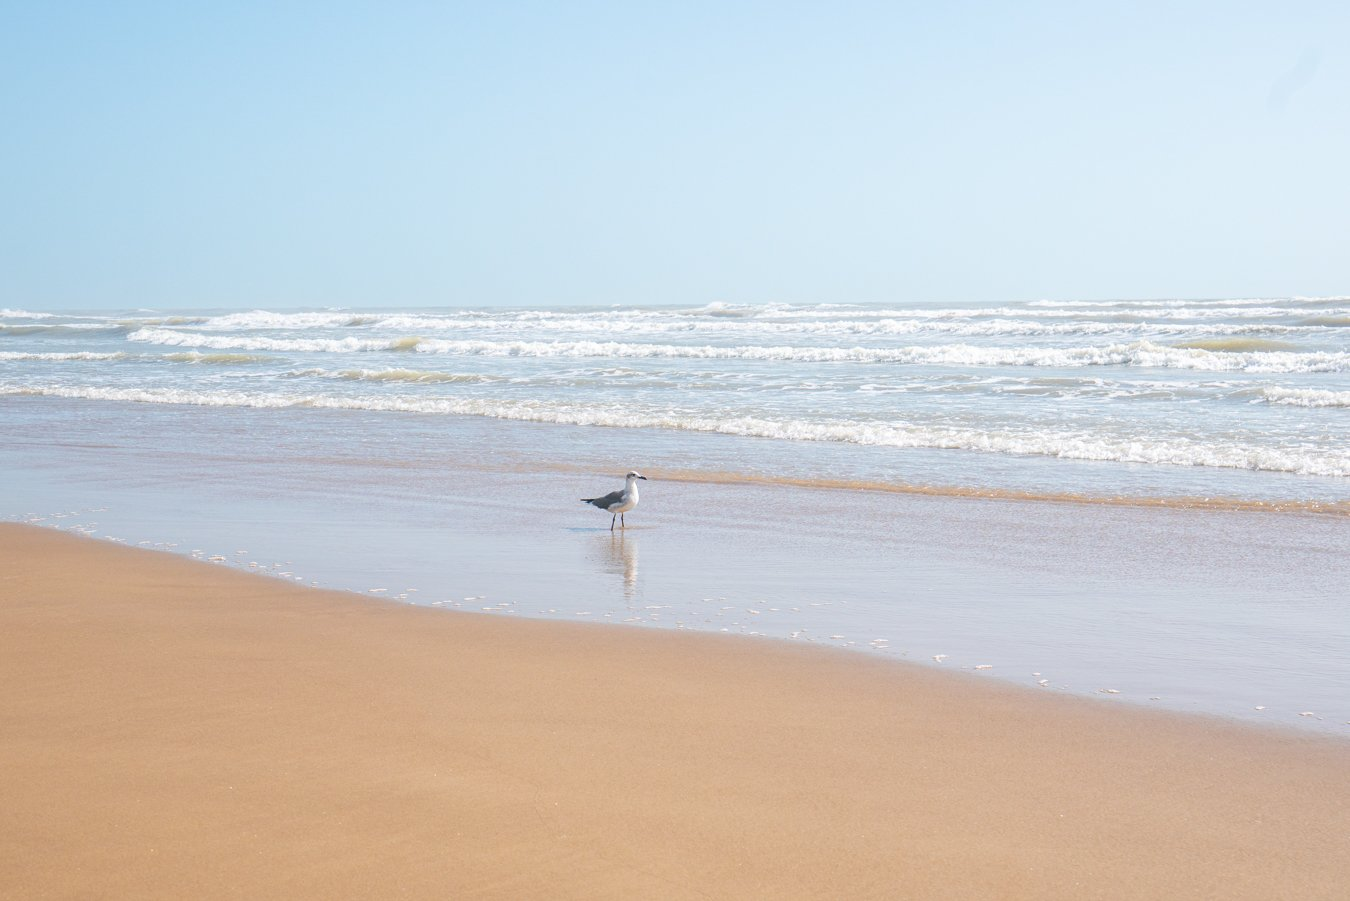 Seagull on the beach in South Padre Island with the surf in the background. Going to the beach is one of the best things to do South Padre Island TX